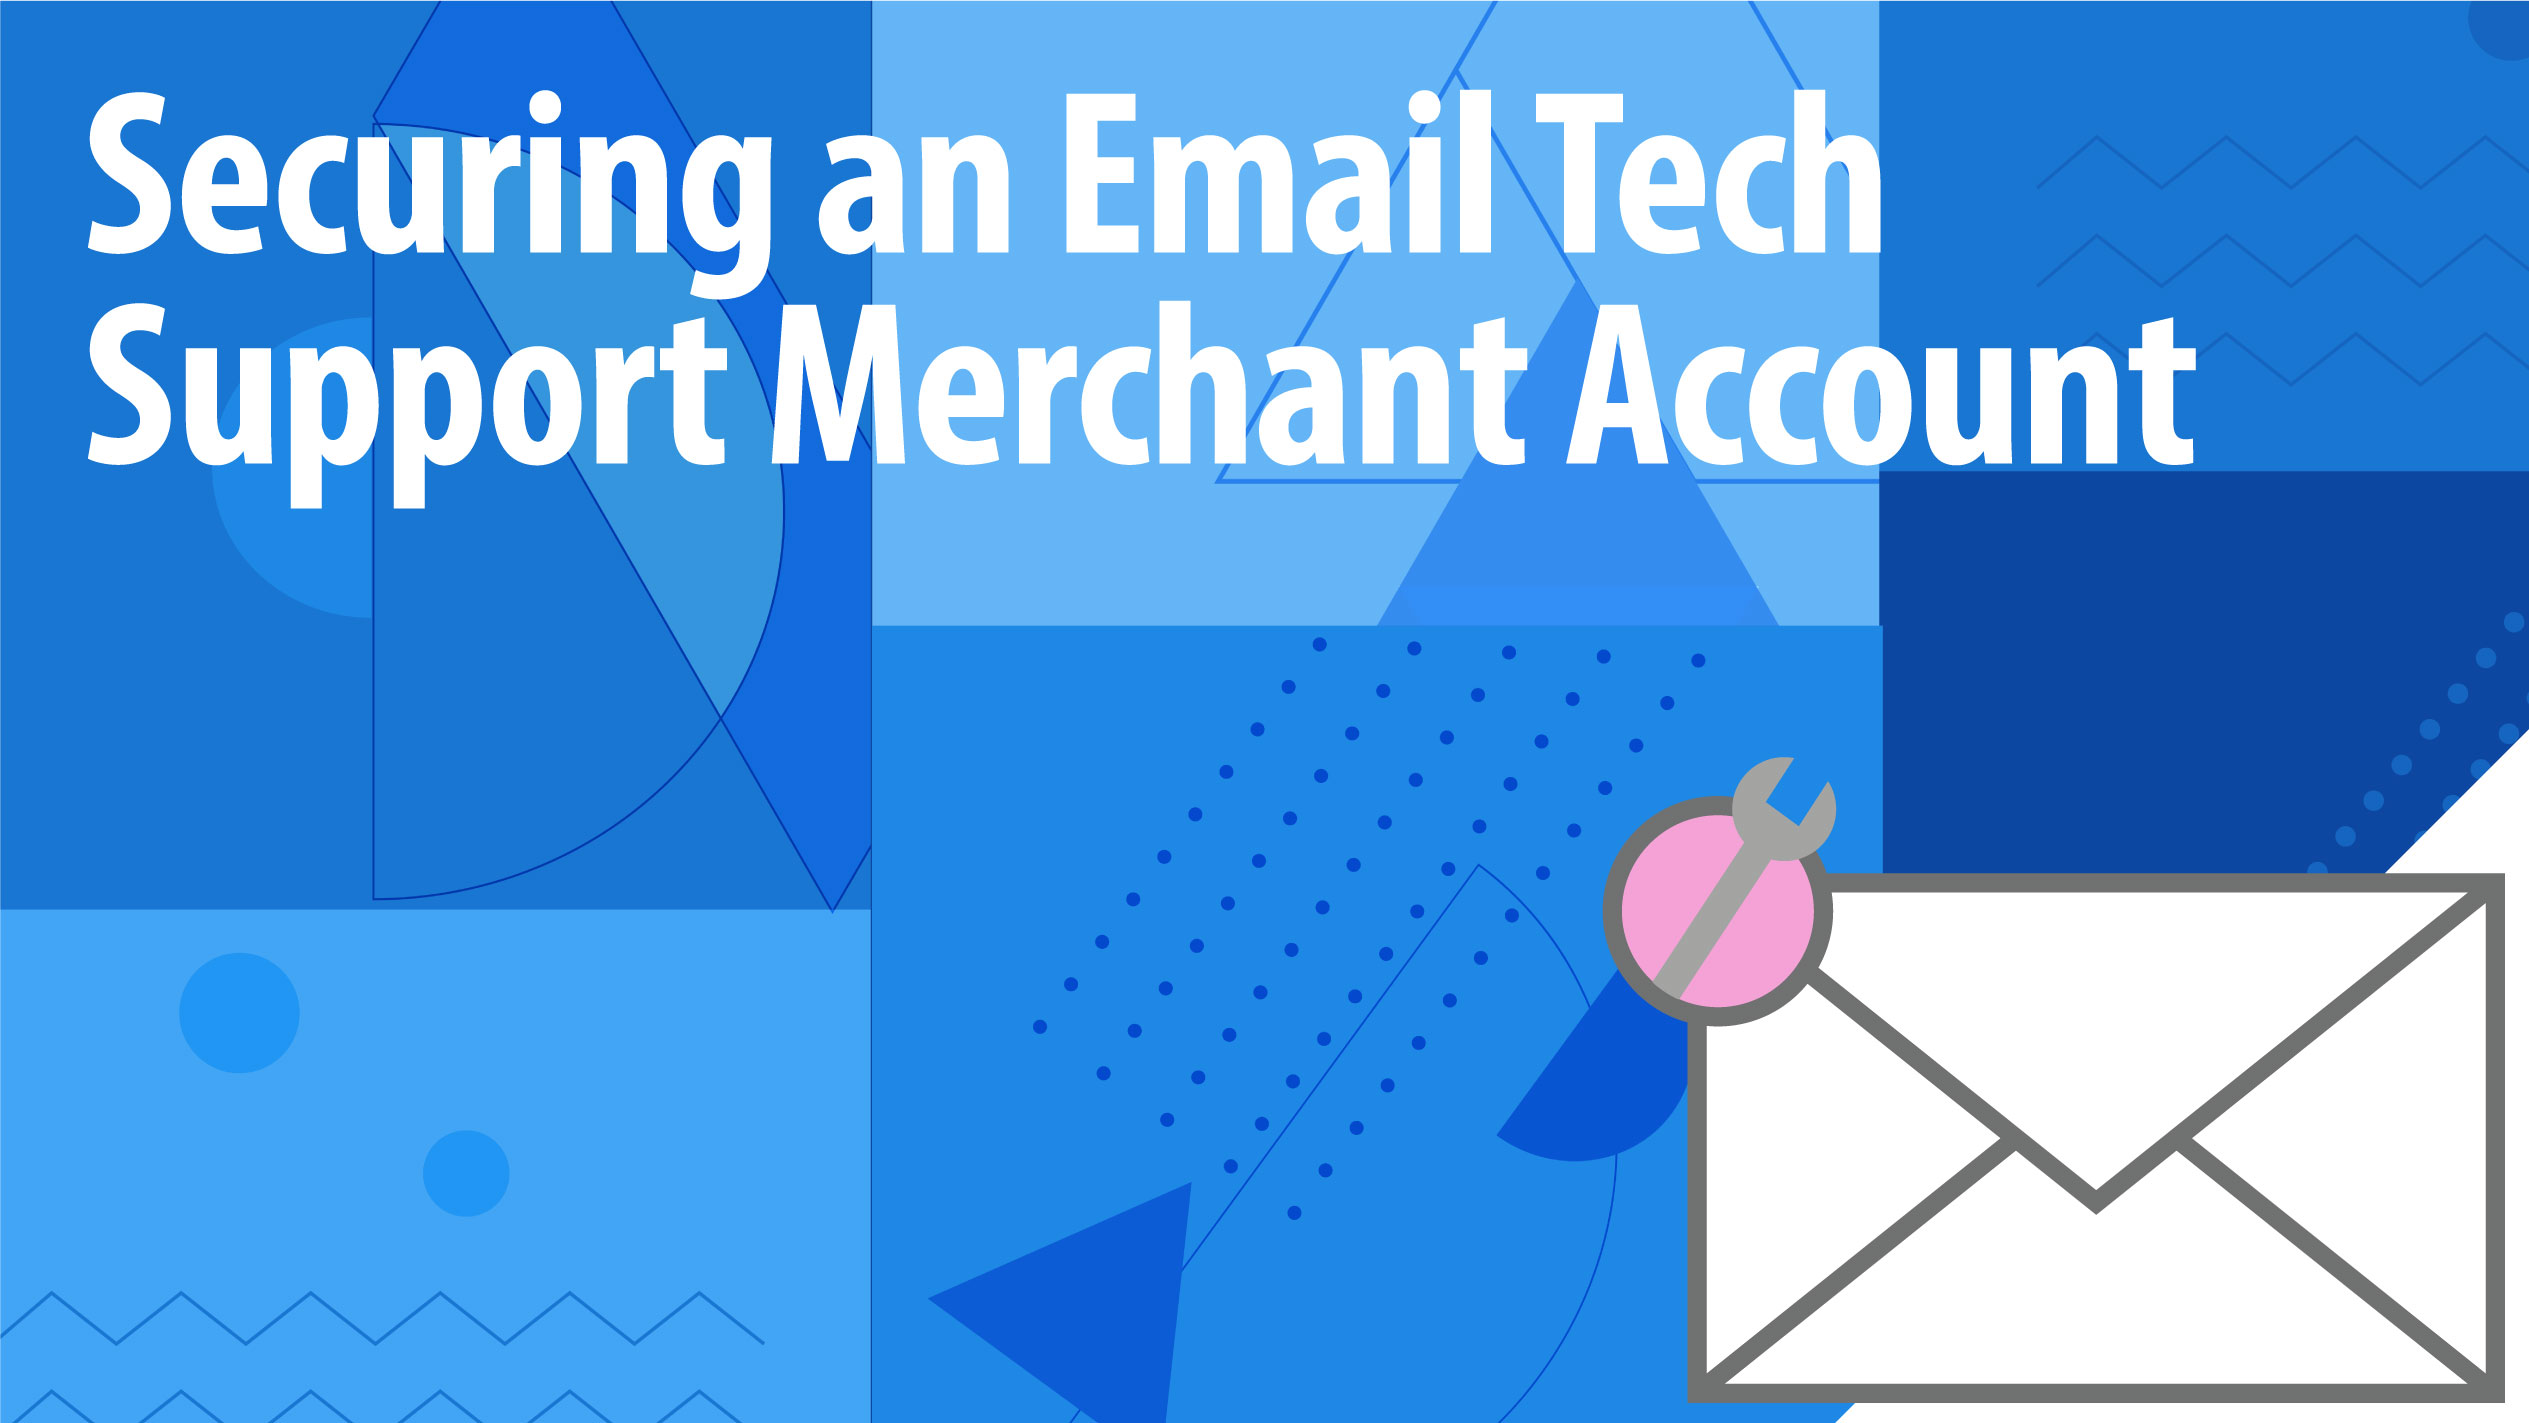 Securing an Email Tech Support Merchant Account